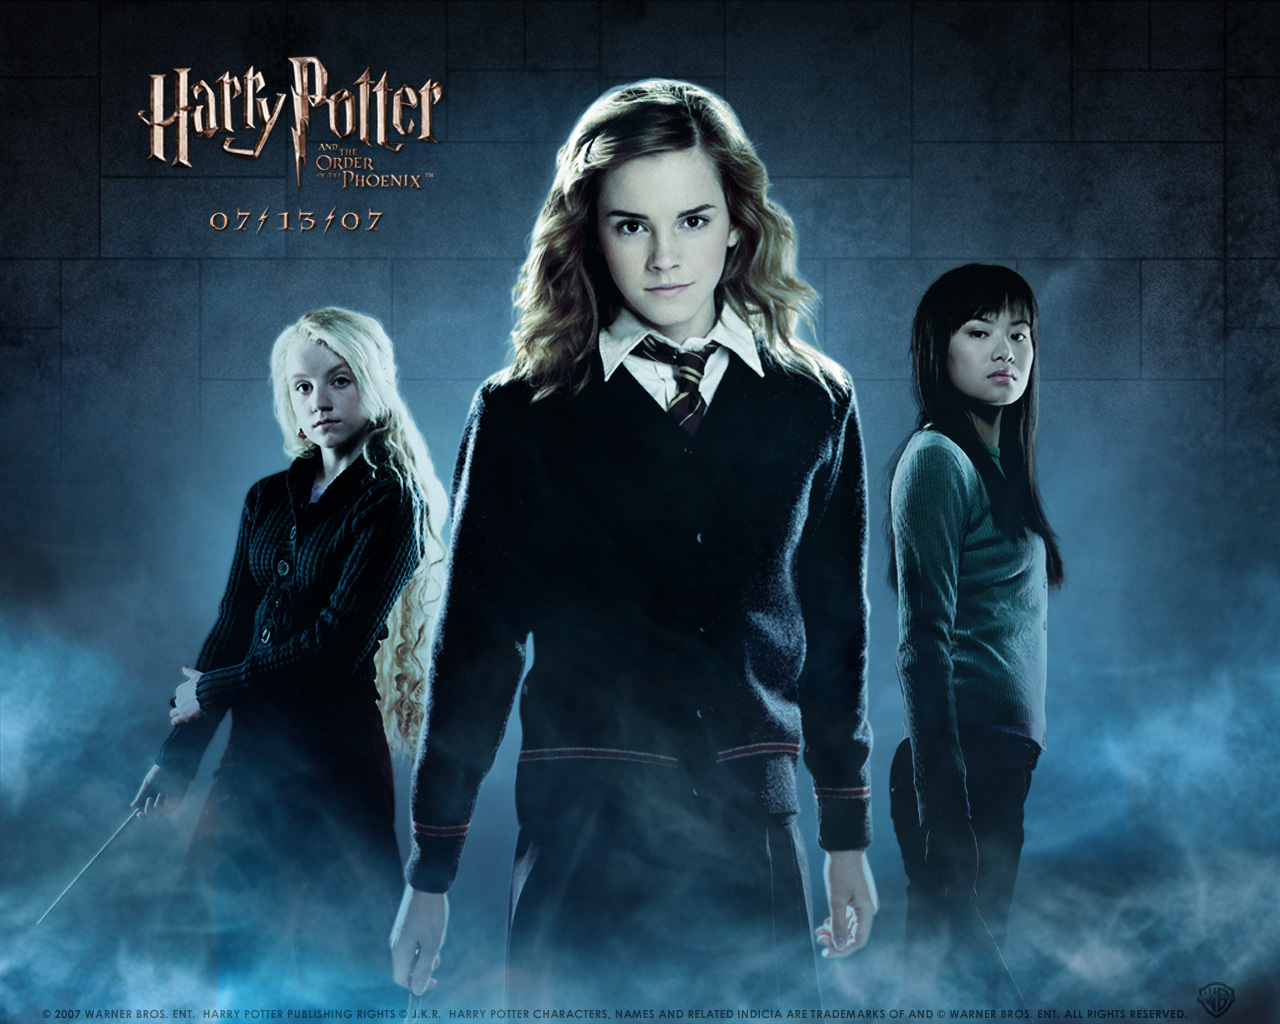 harry potter movies images harry potter hd wallpaper and